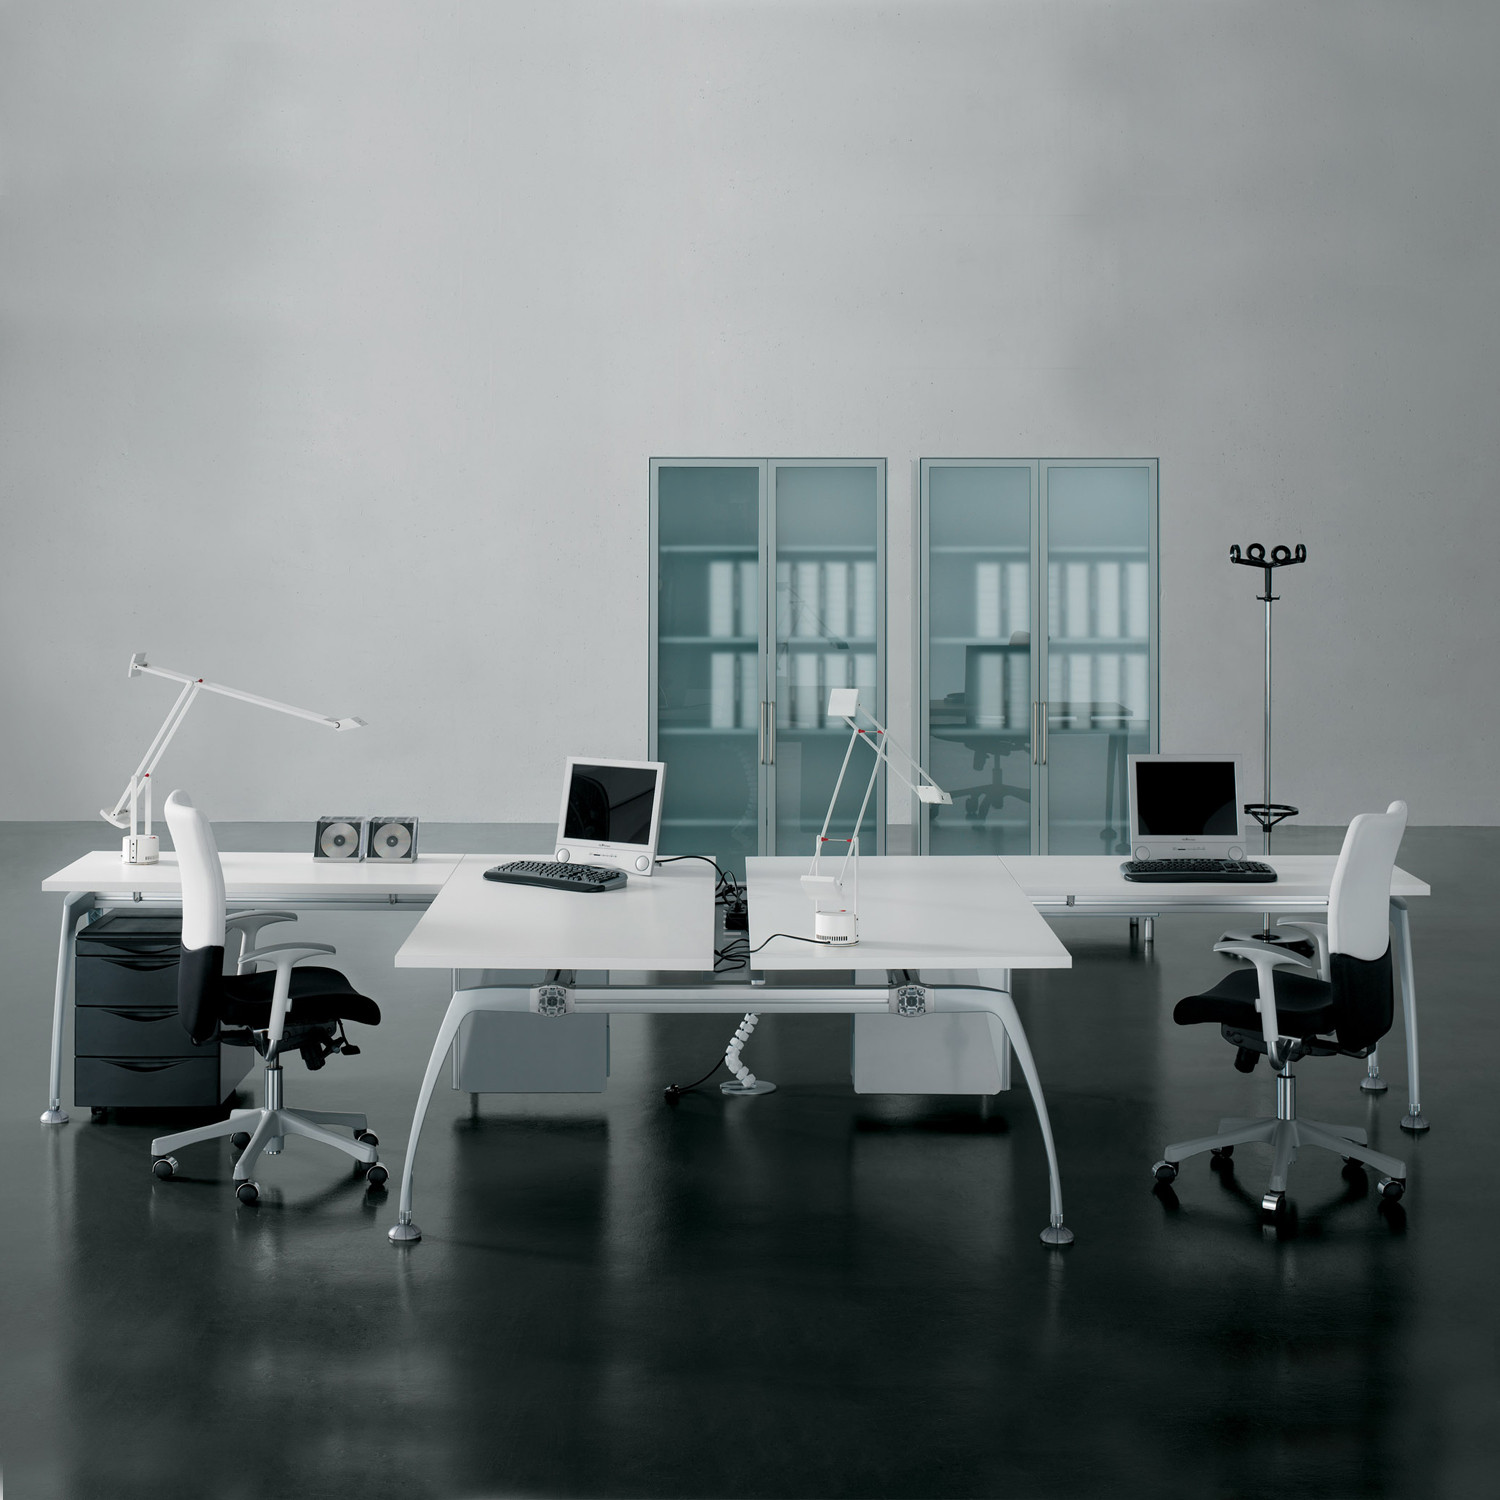 Tiper Modular Desking System with additional working space area